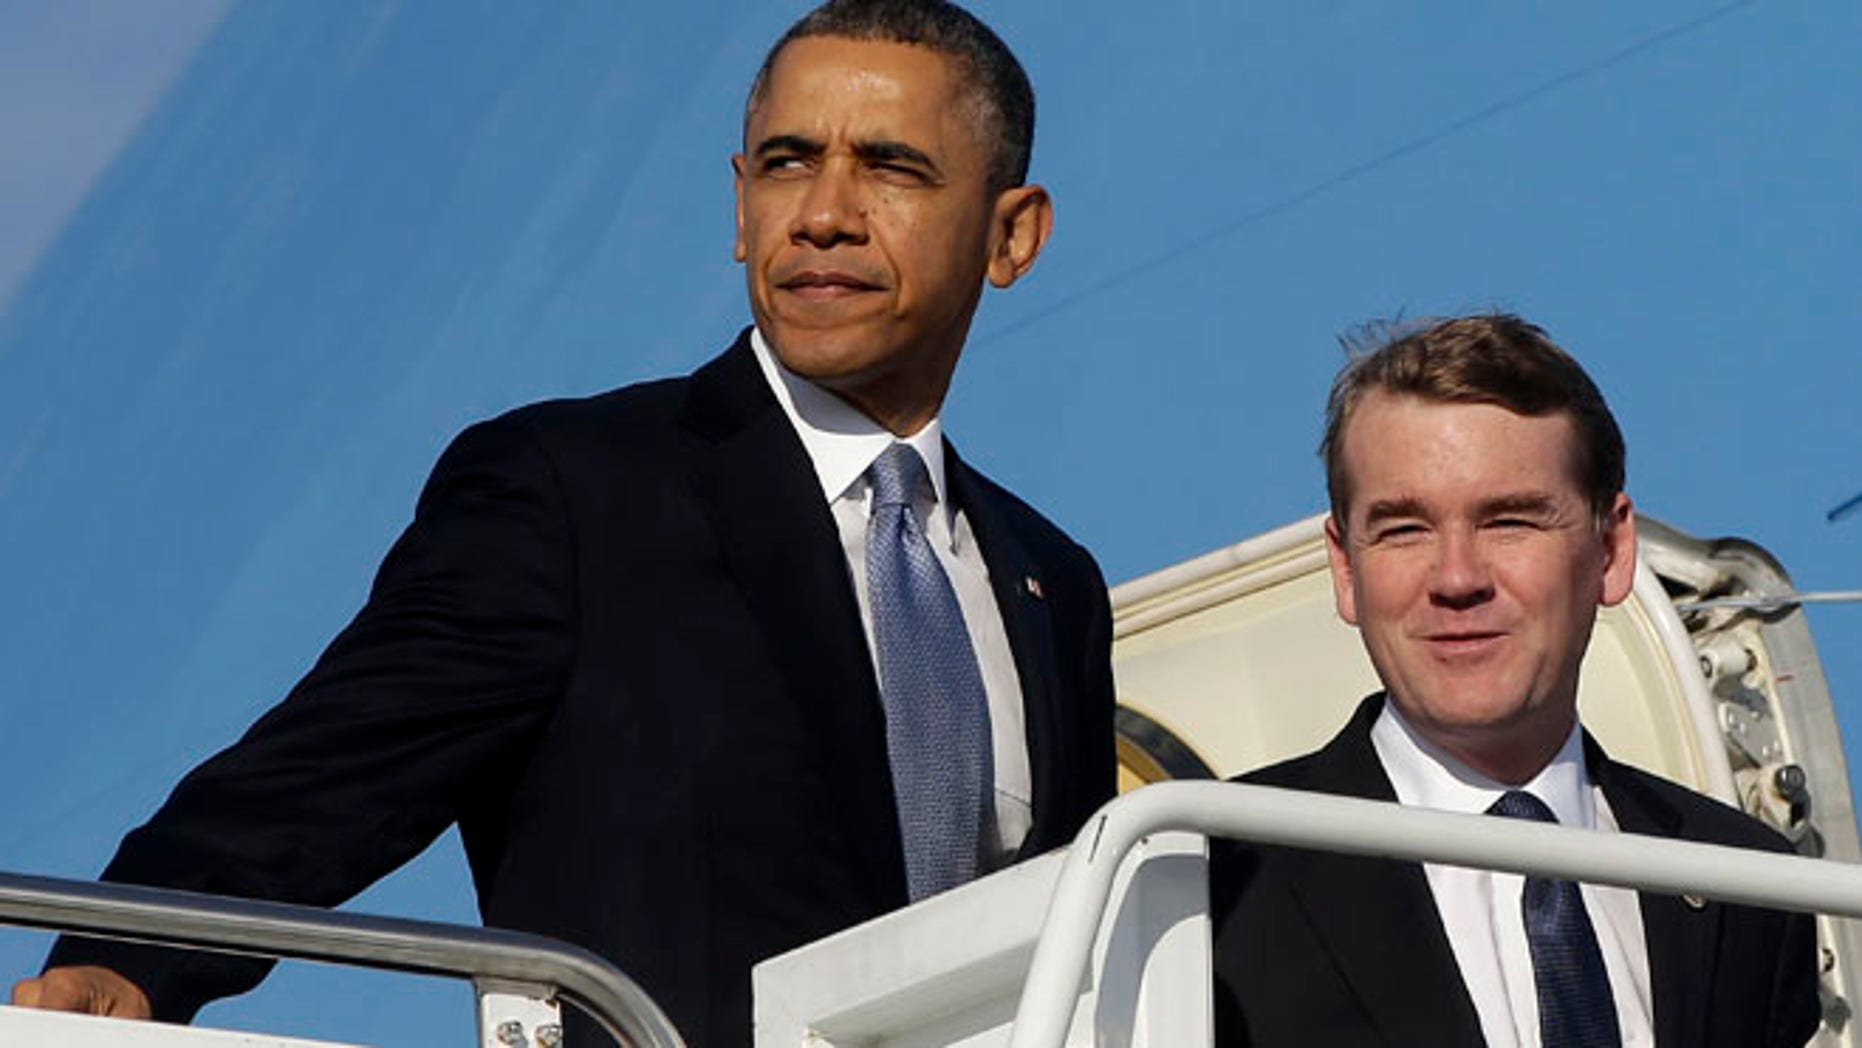 Nov. 6, 2013: President Barack Obama and Democratic Senatorial Campaign Committee Chairman Sen. Michael Bennett, D-Colo., board Air Force One at Andrews Air Force Base.